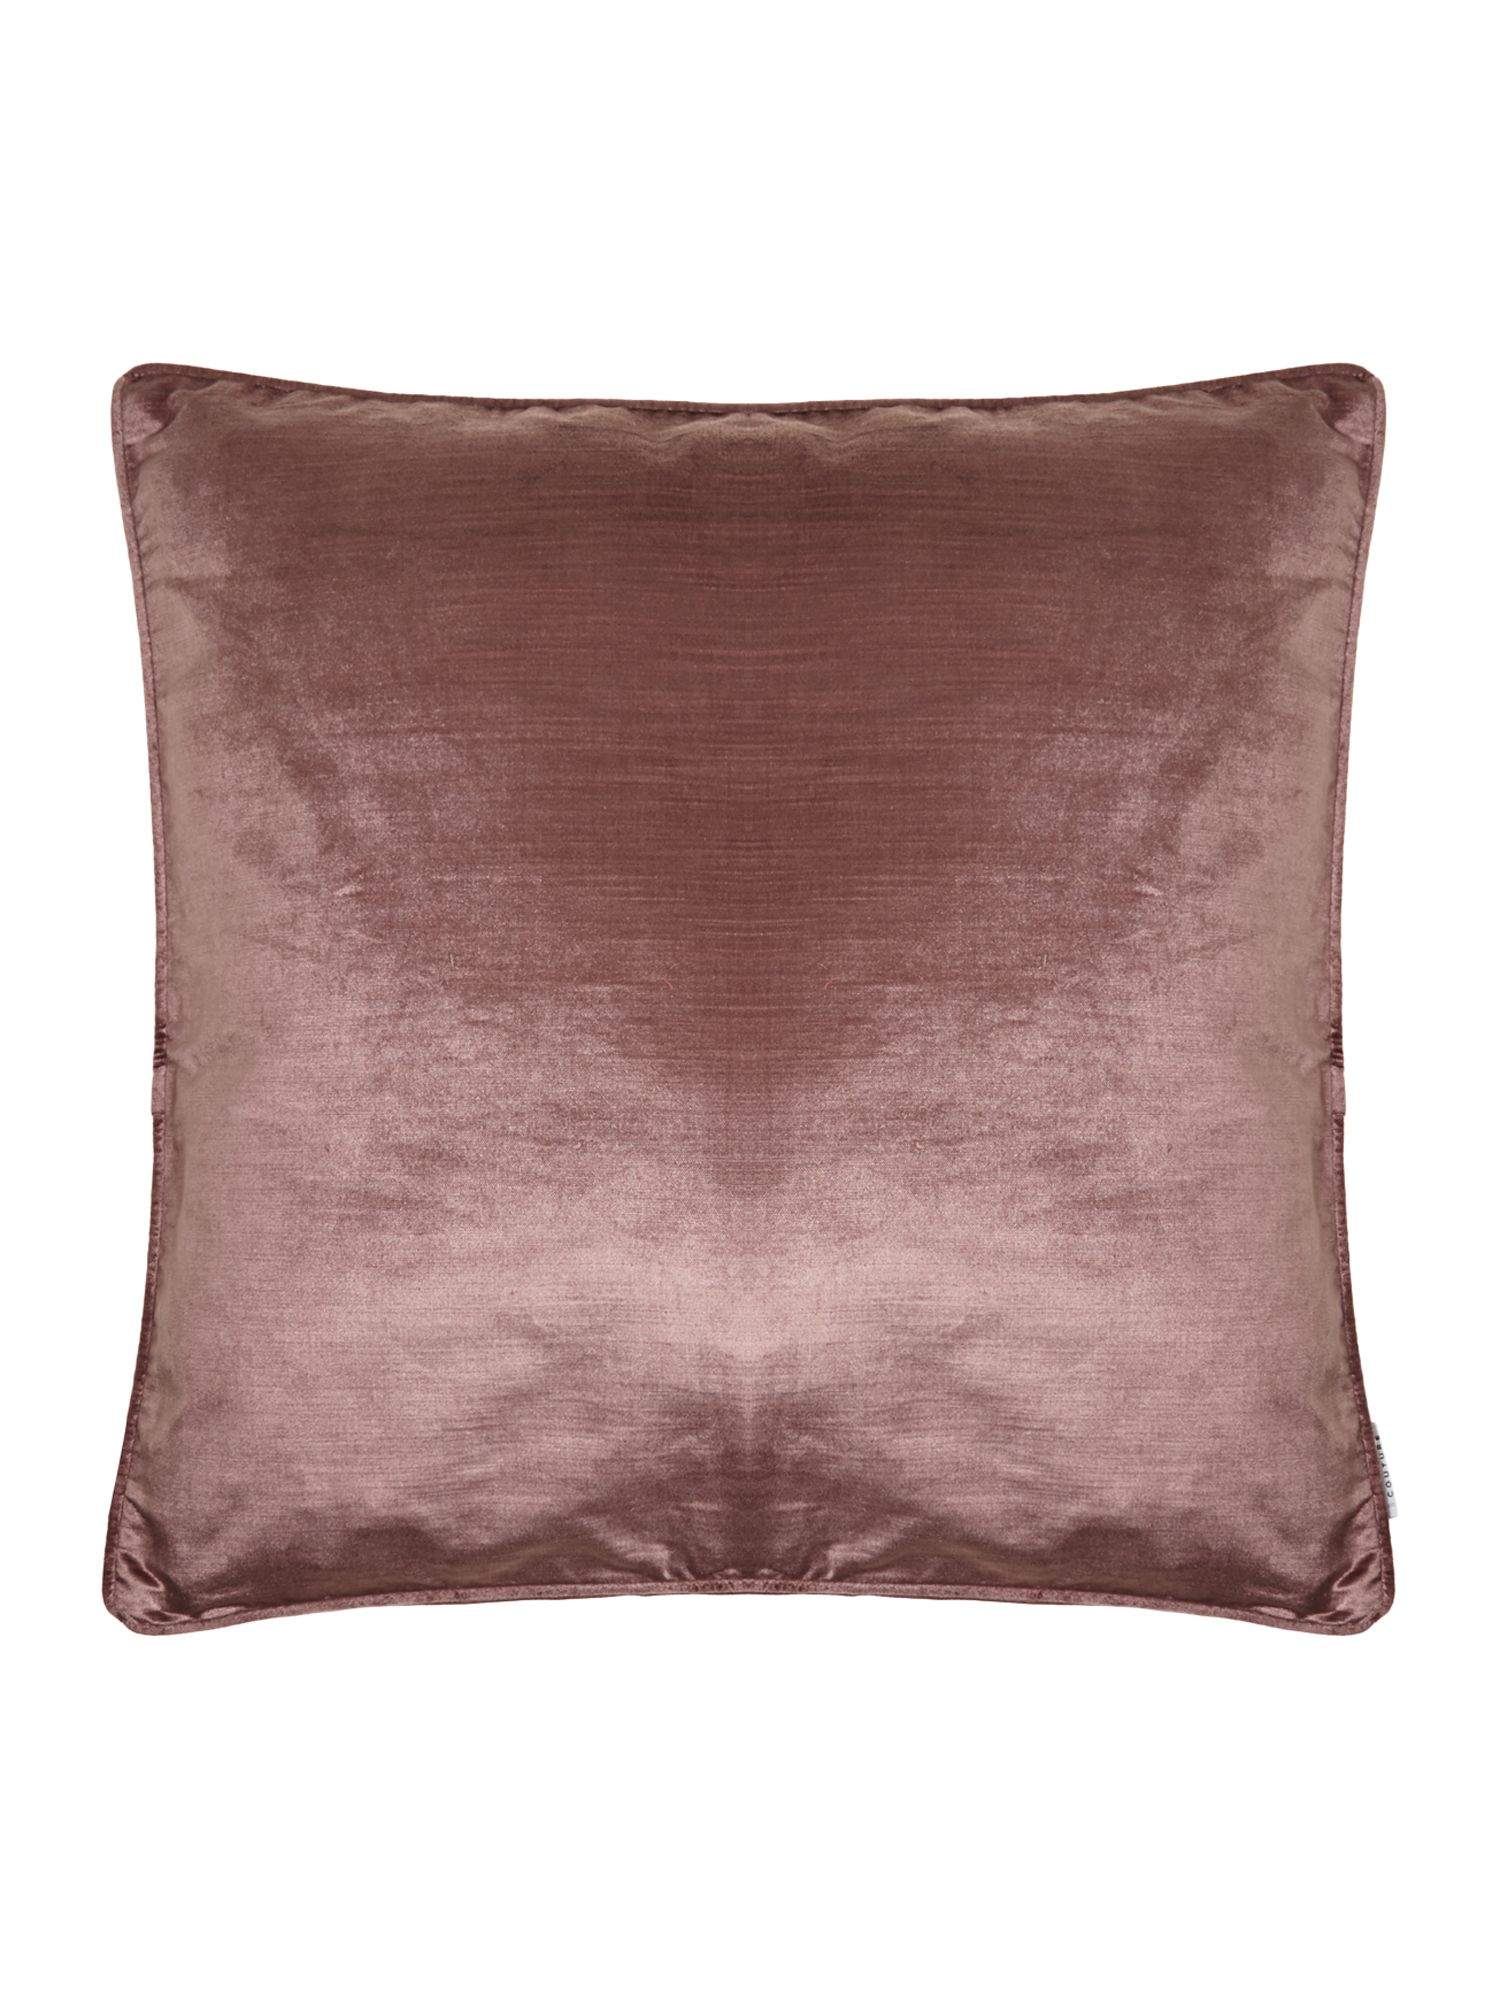 Oversized light plum velvet cushion